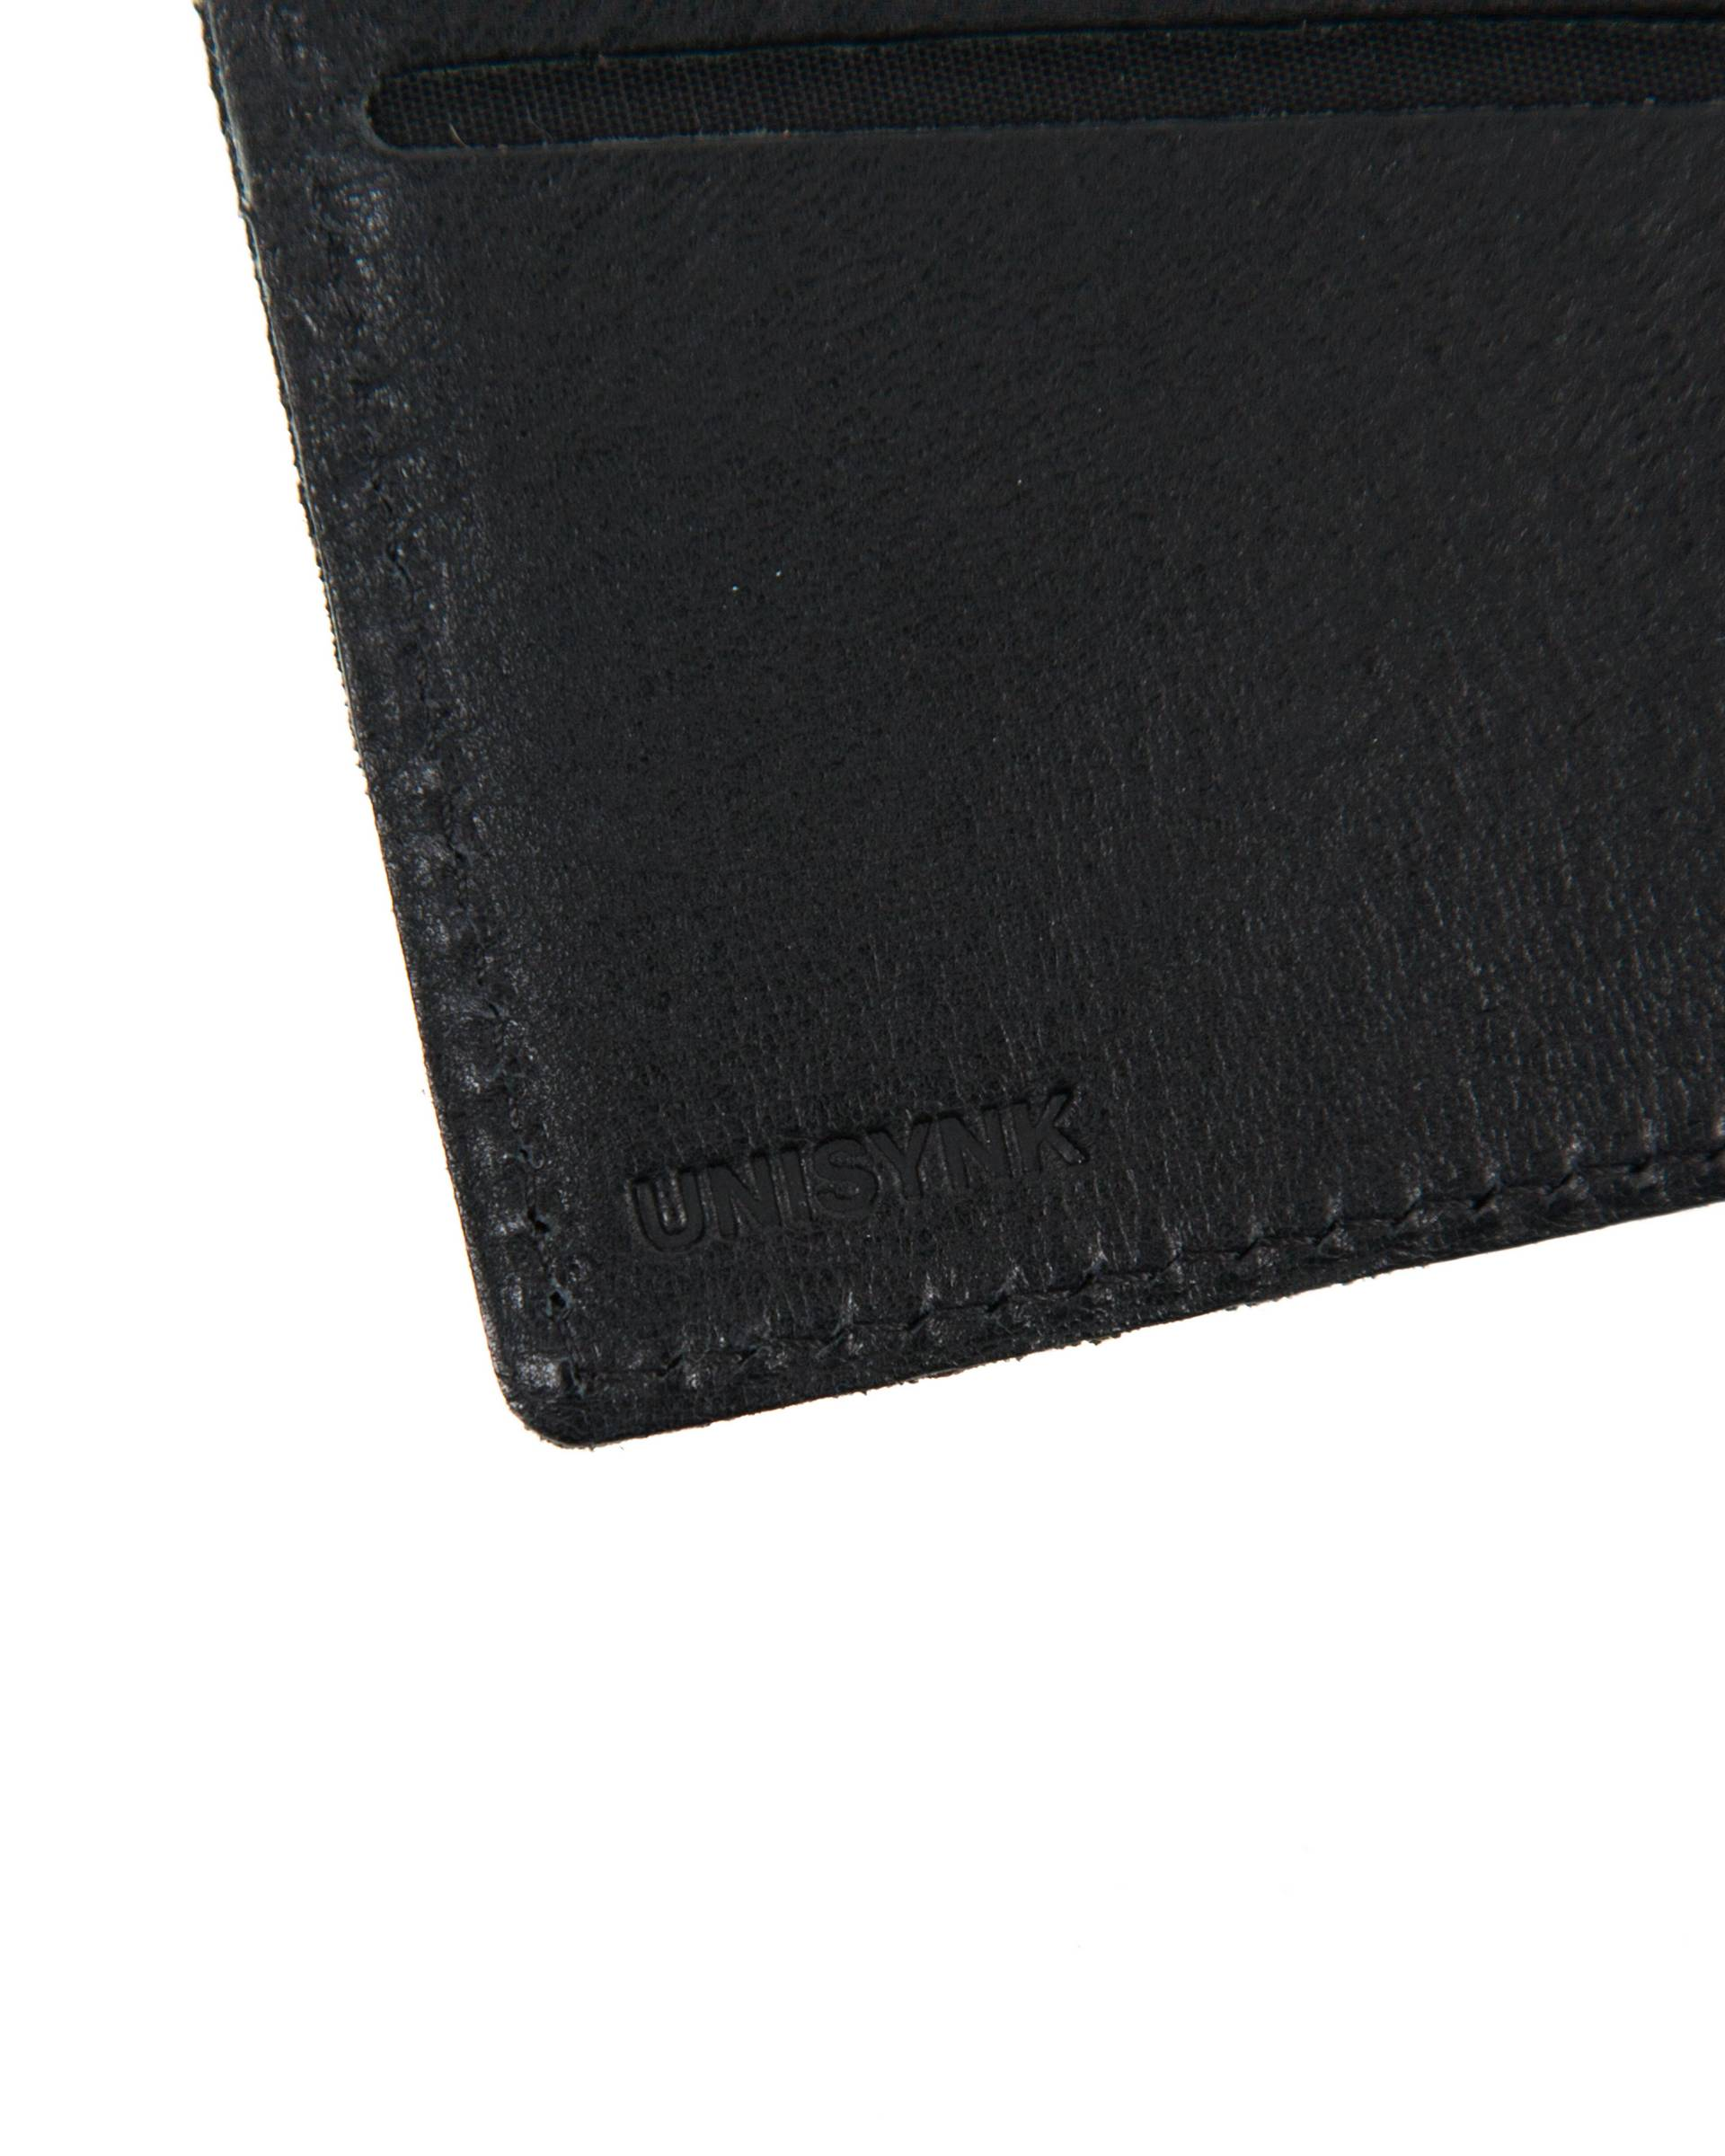 Кардхолдер Unisynk Black Card Wallet